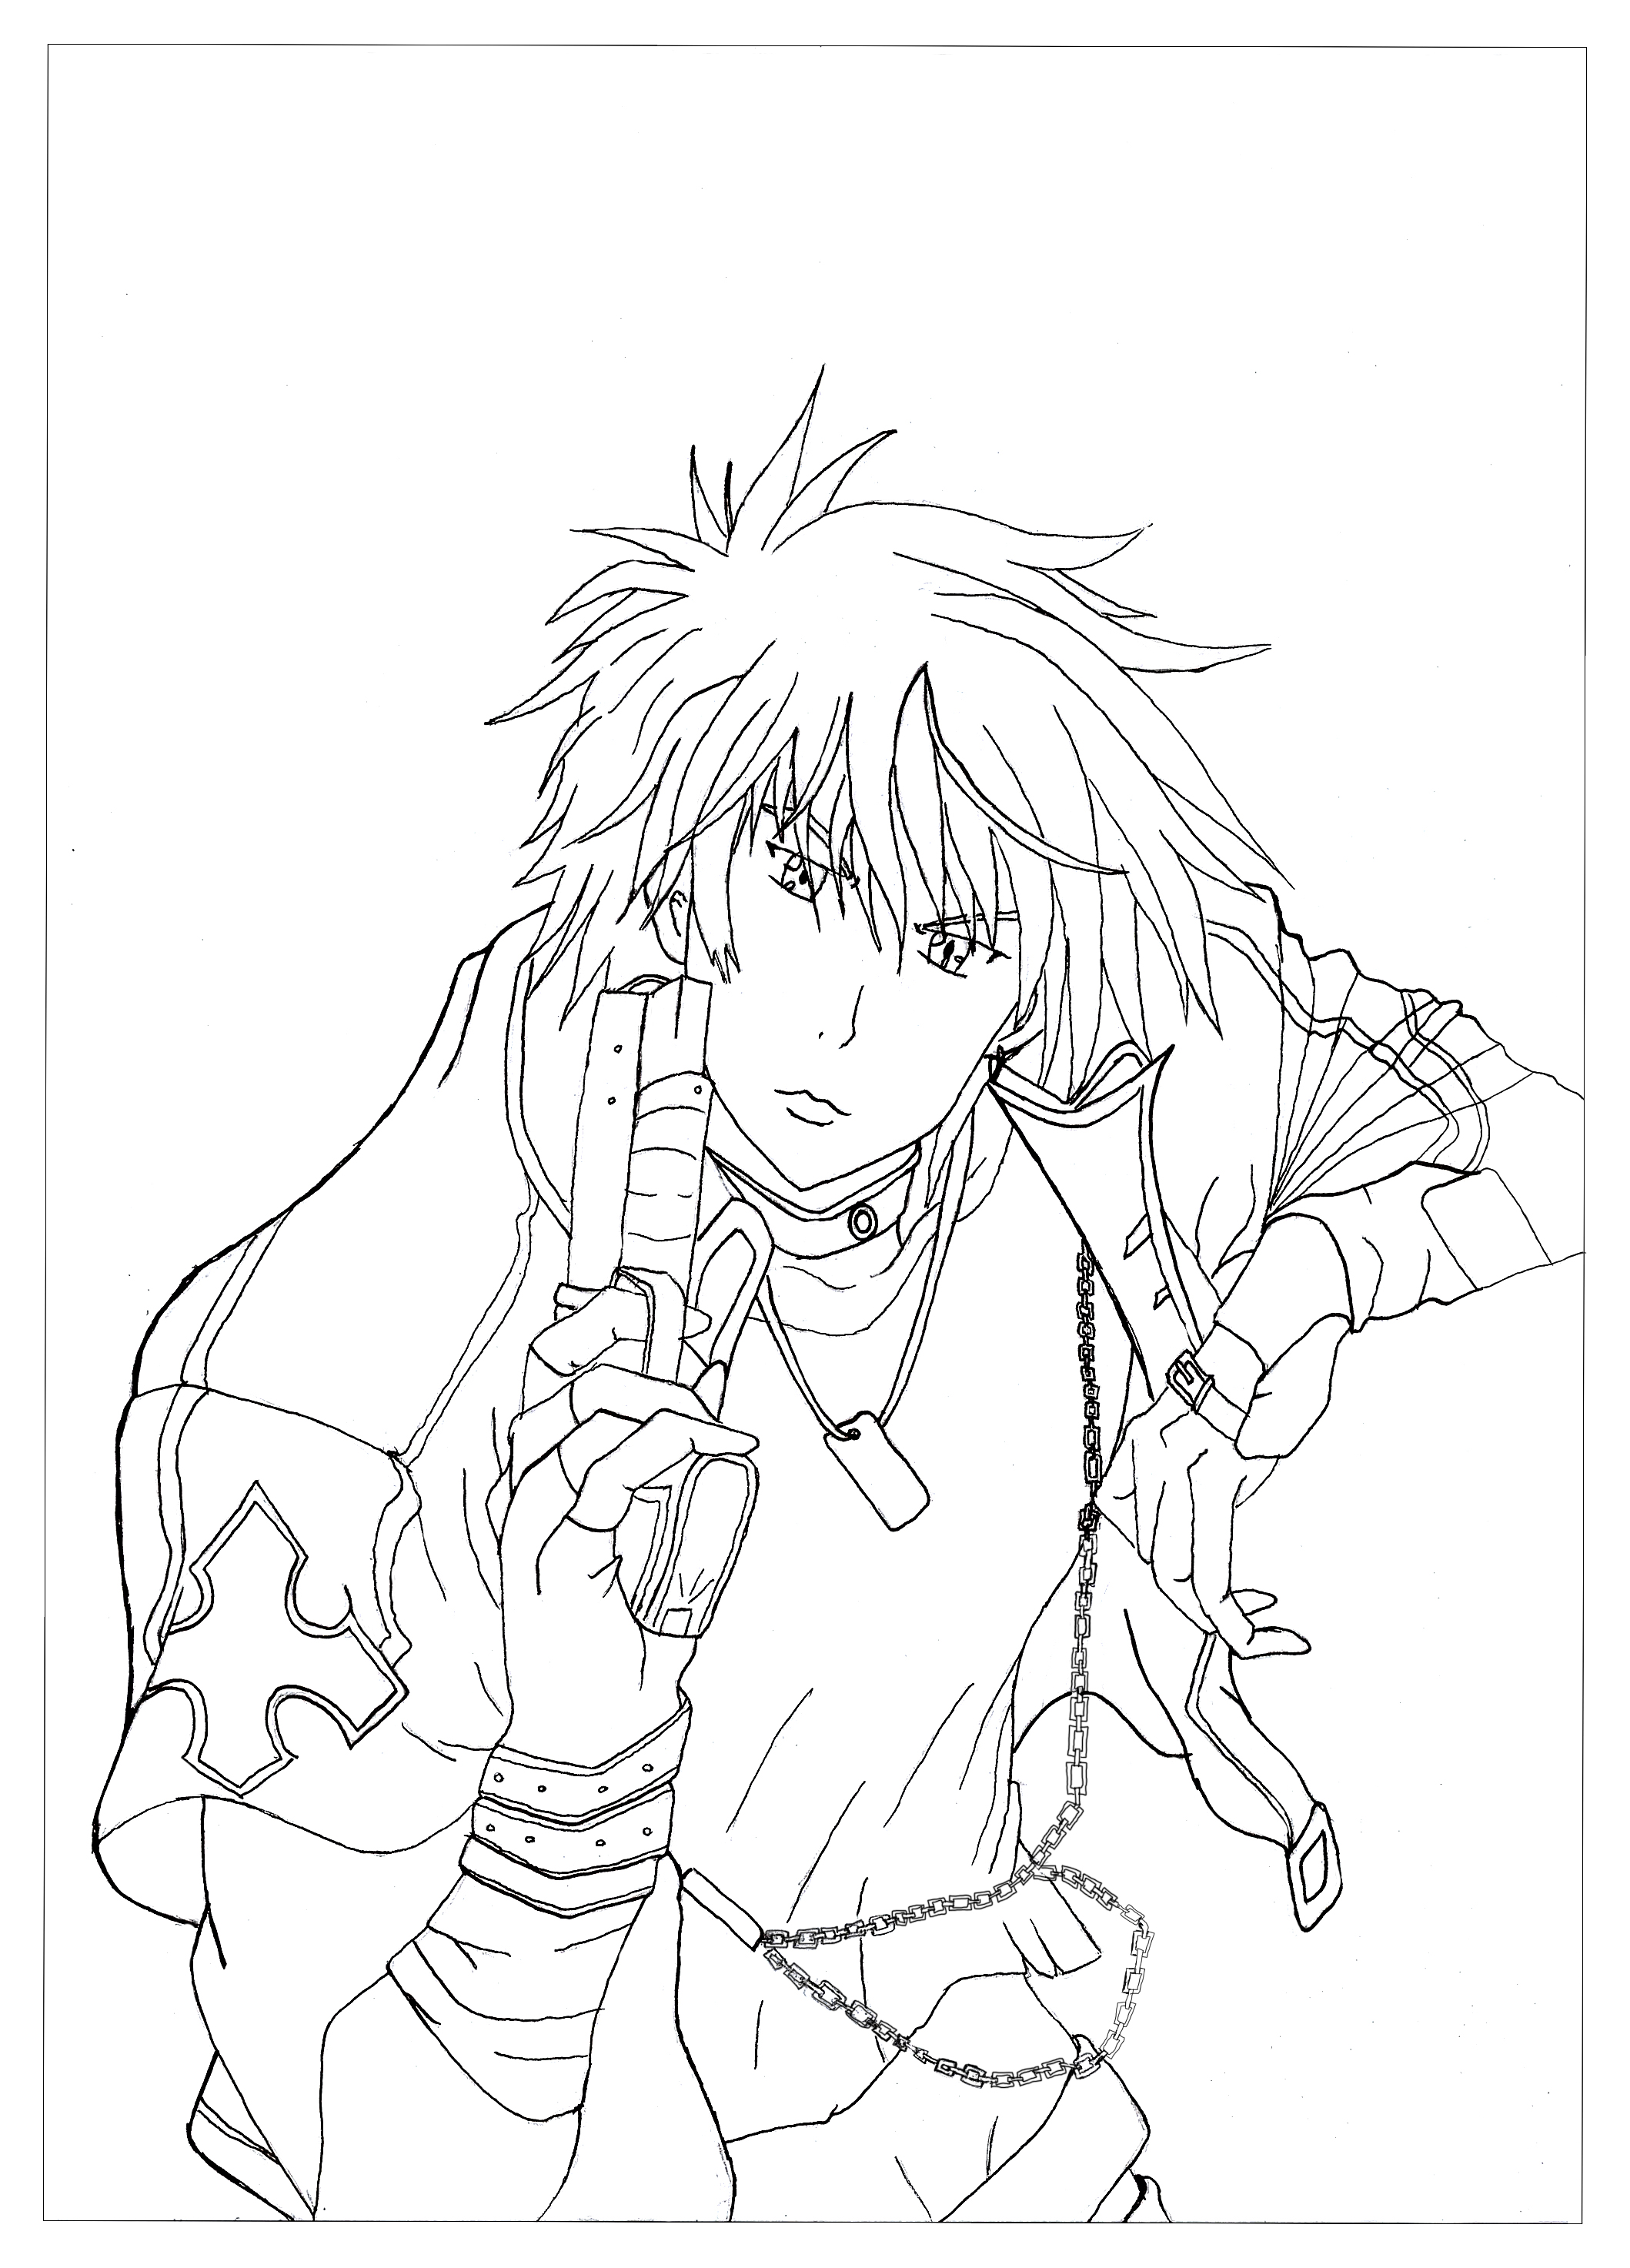 Here is a coloring page from Rayne. He's the character of the manga Neo Angelique Abyss. His role is to purify the evil spirit with his weapon.